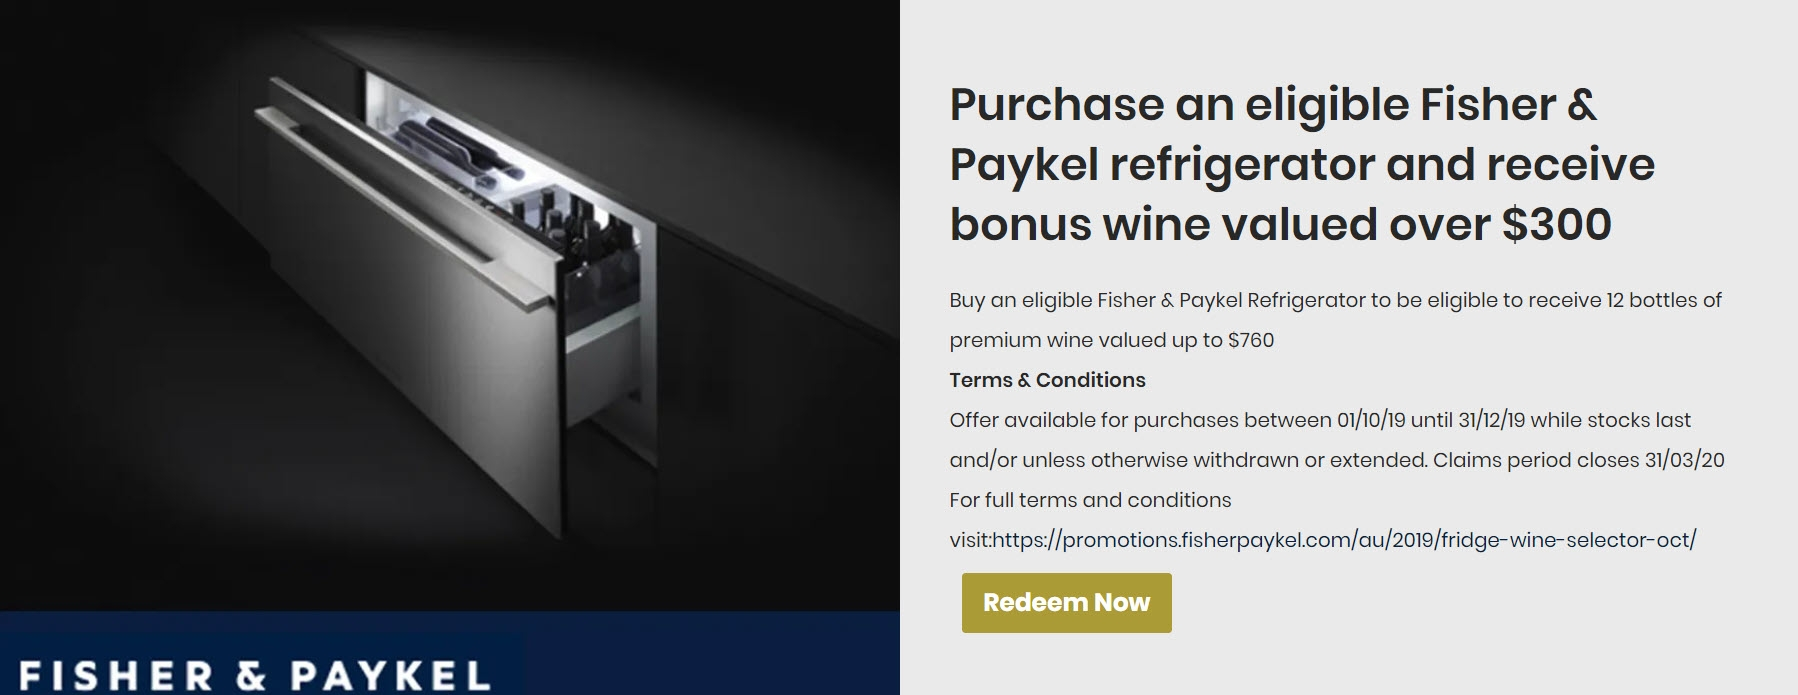 Fisher & Paykel Bonus Wine Promotion